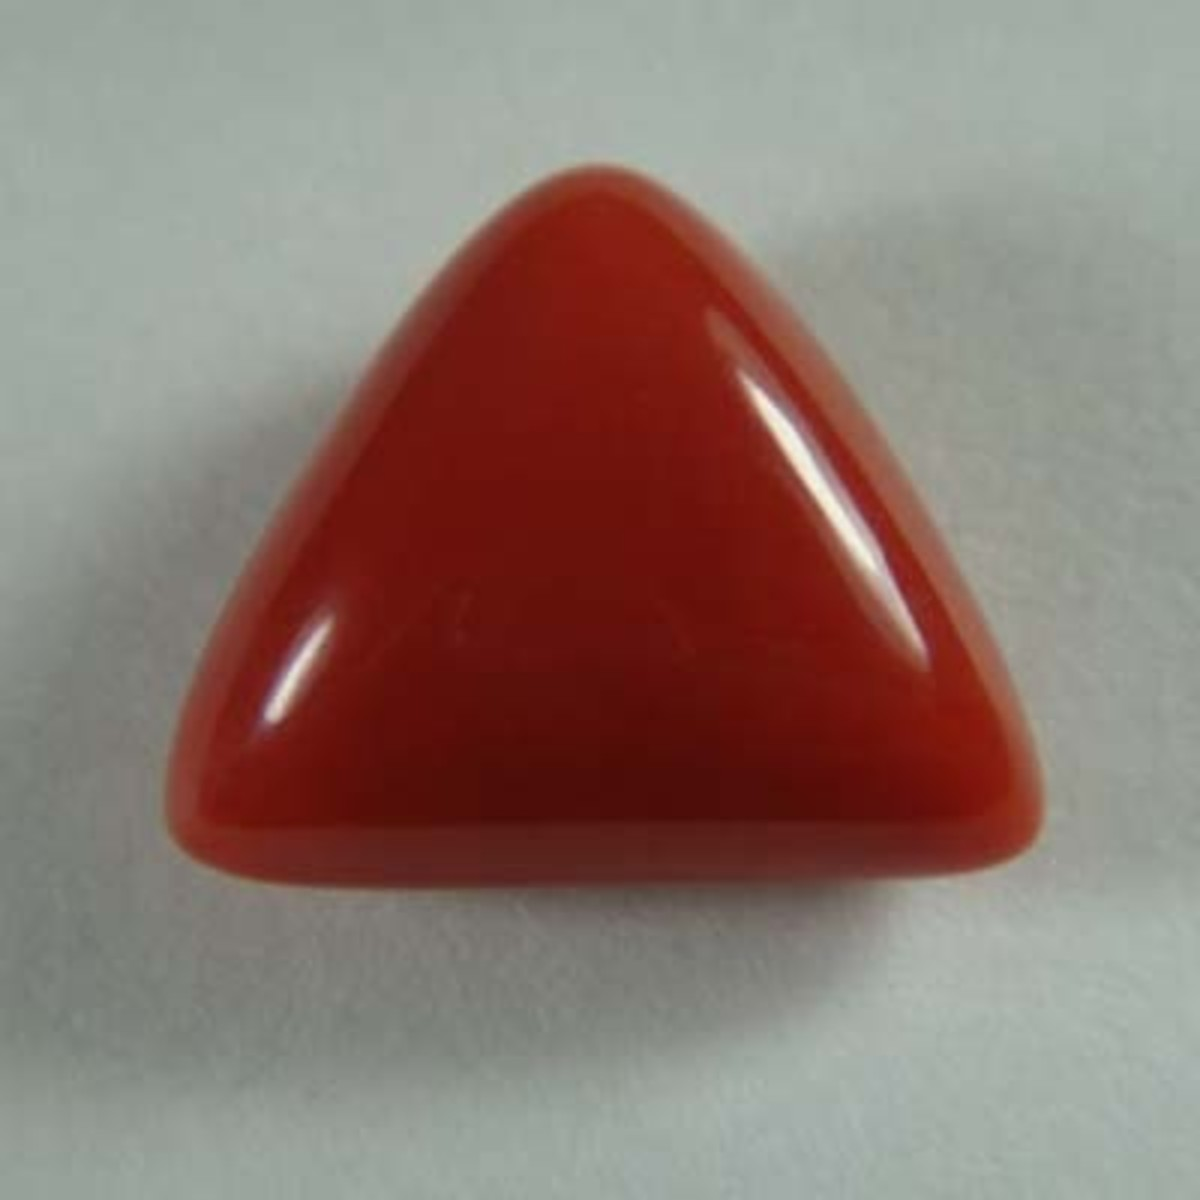 Benefits of Red Coral Gemstone